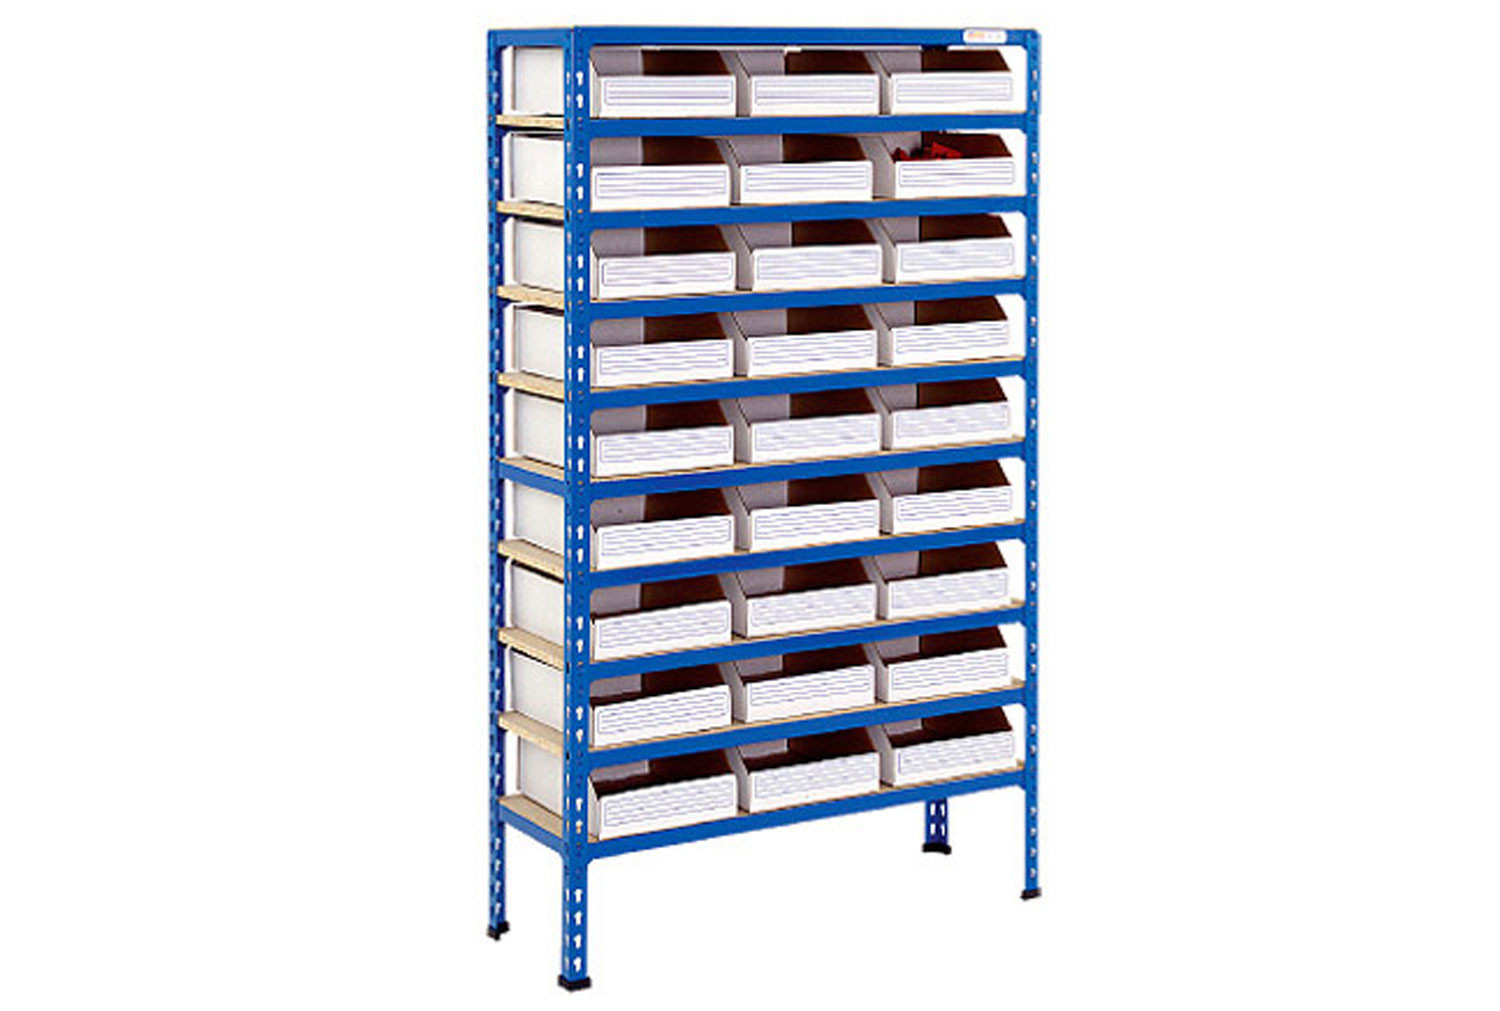 Rapid 2 shelving with 27 cardboard picking bins